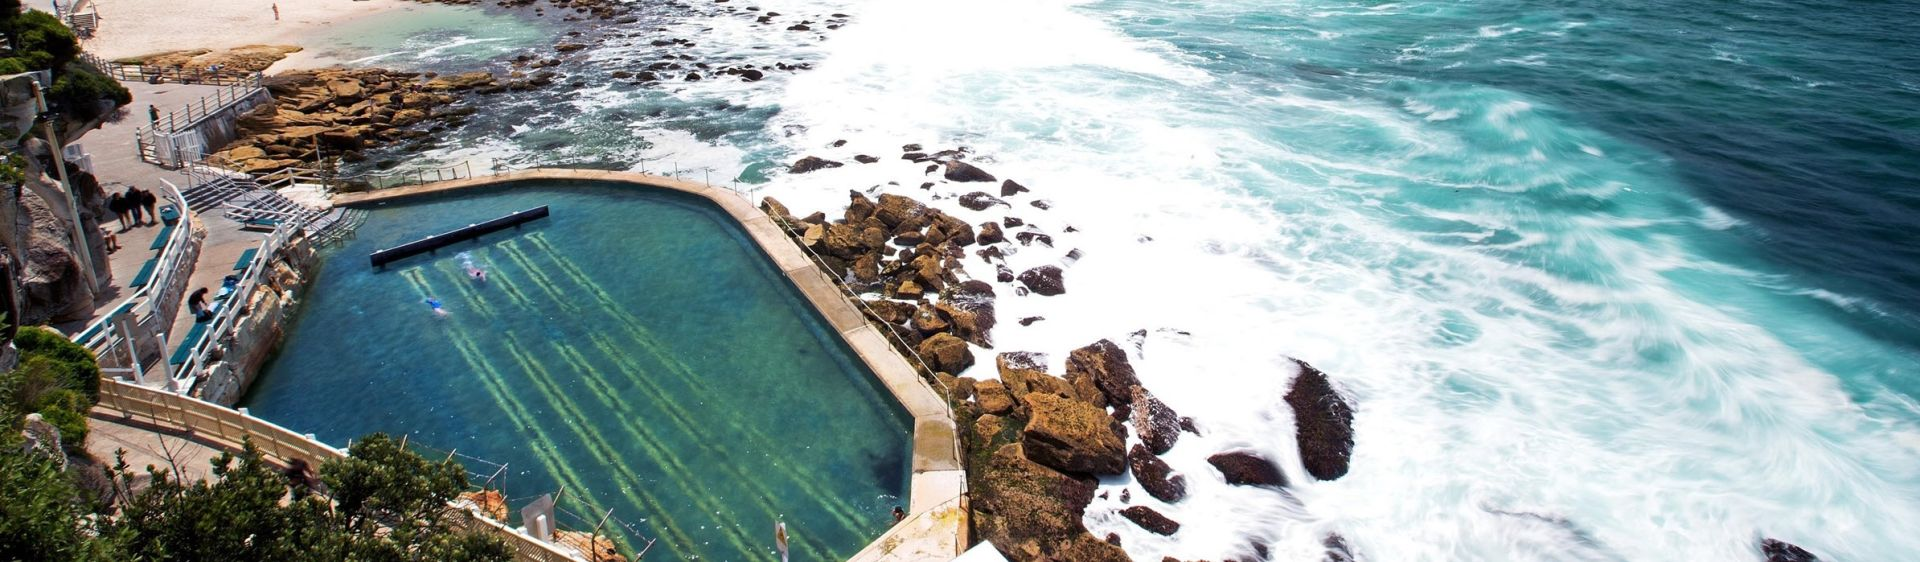 Views of Bronte beach and ocean pool in Sydney